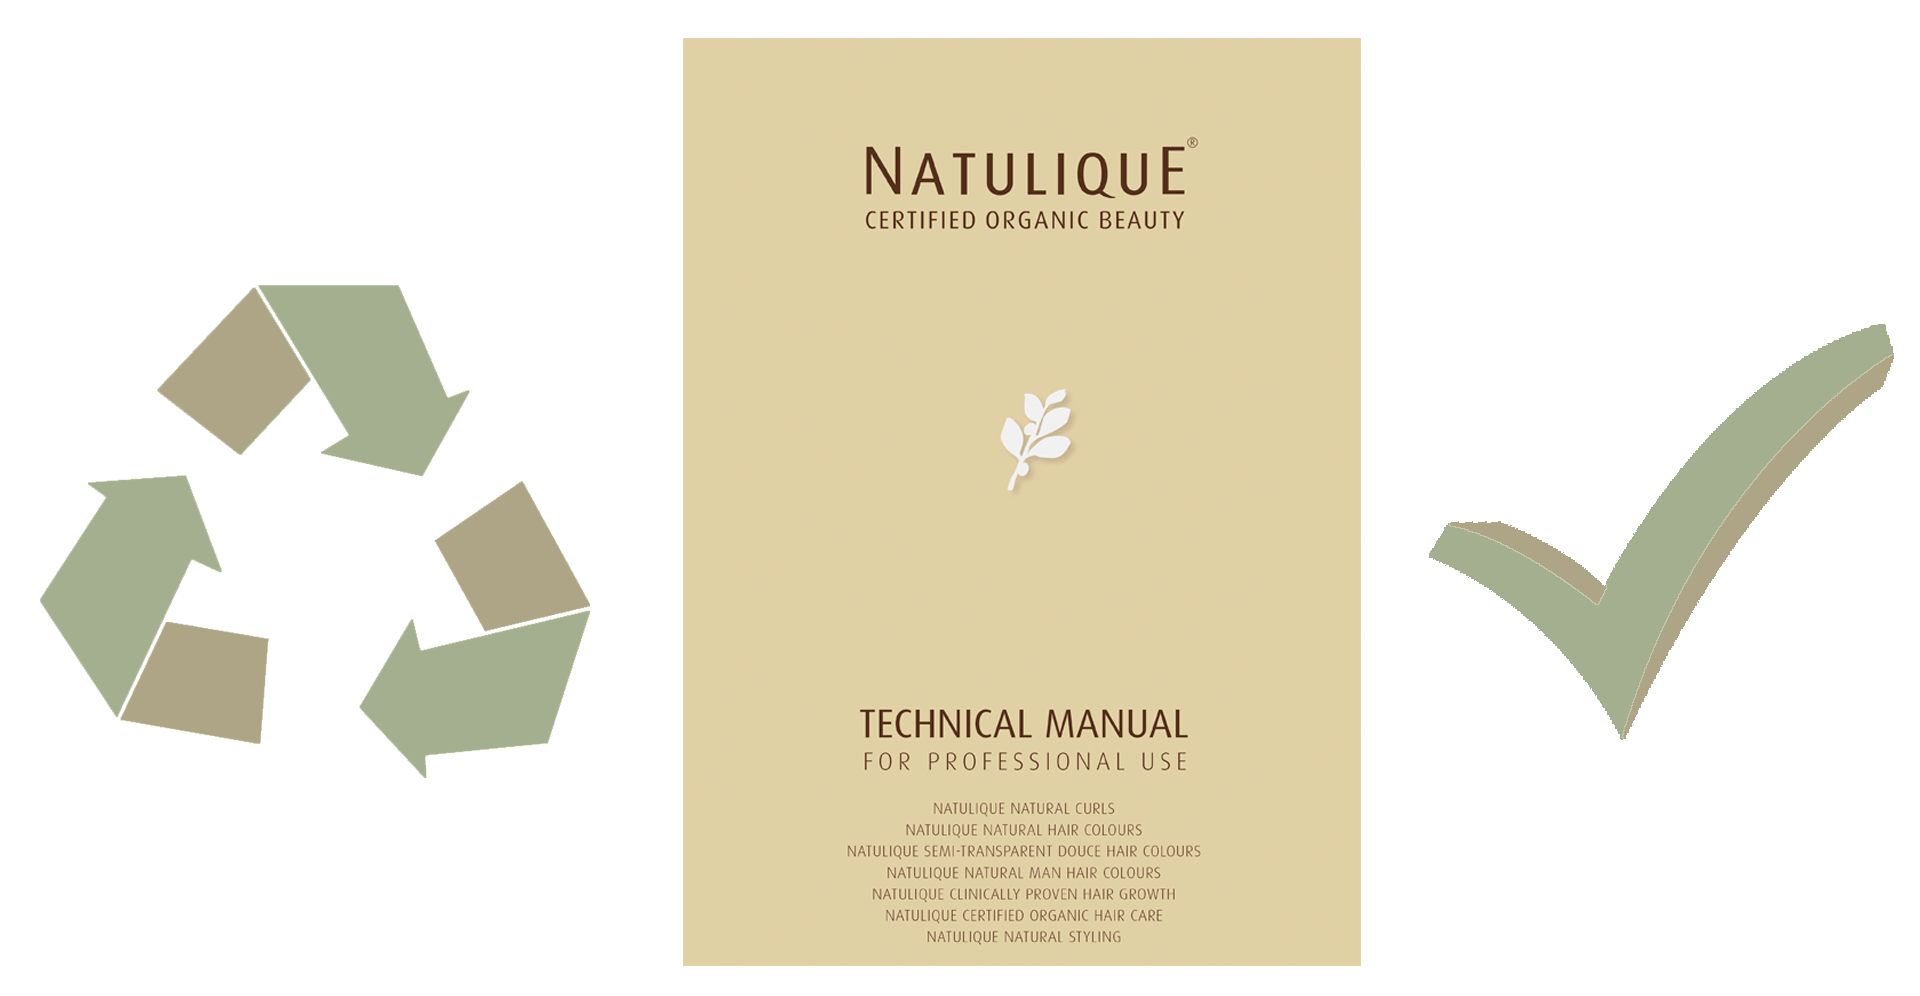 Natulique Technical manual on recyclable paper